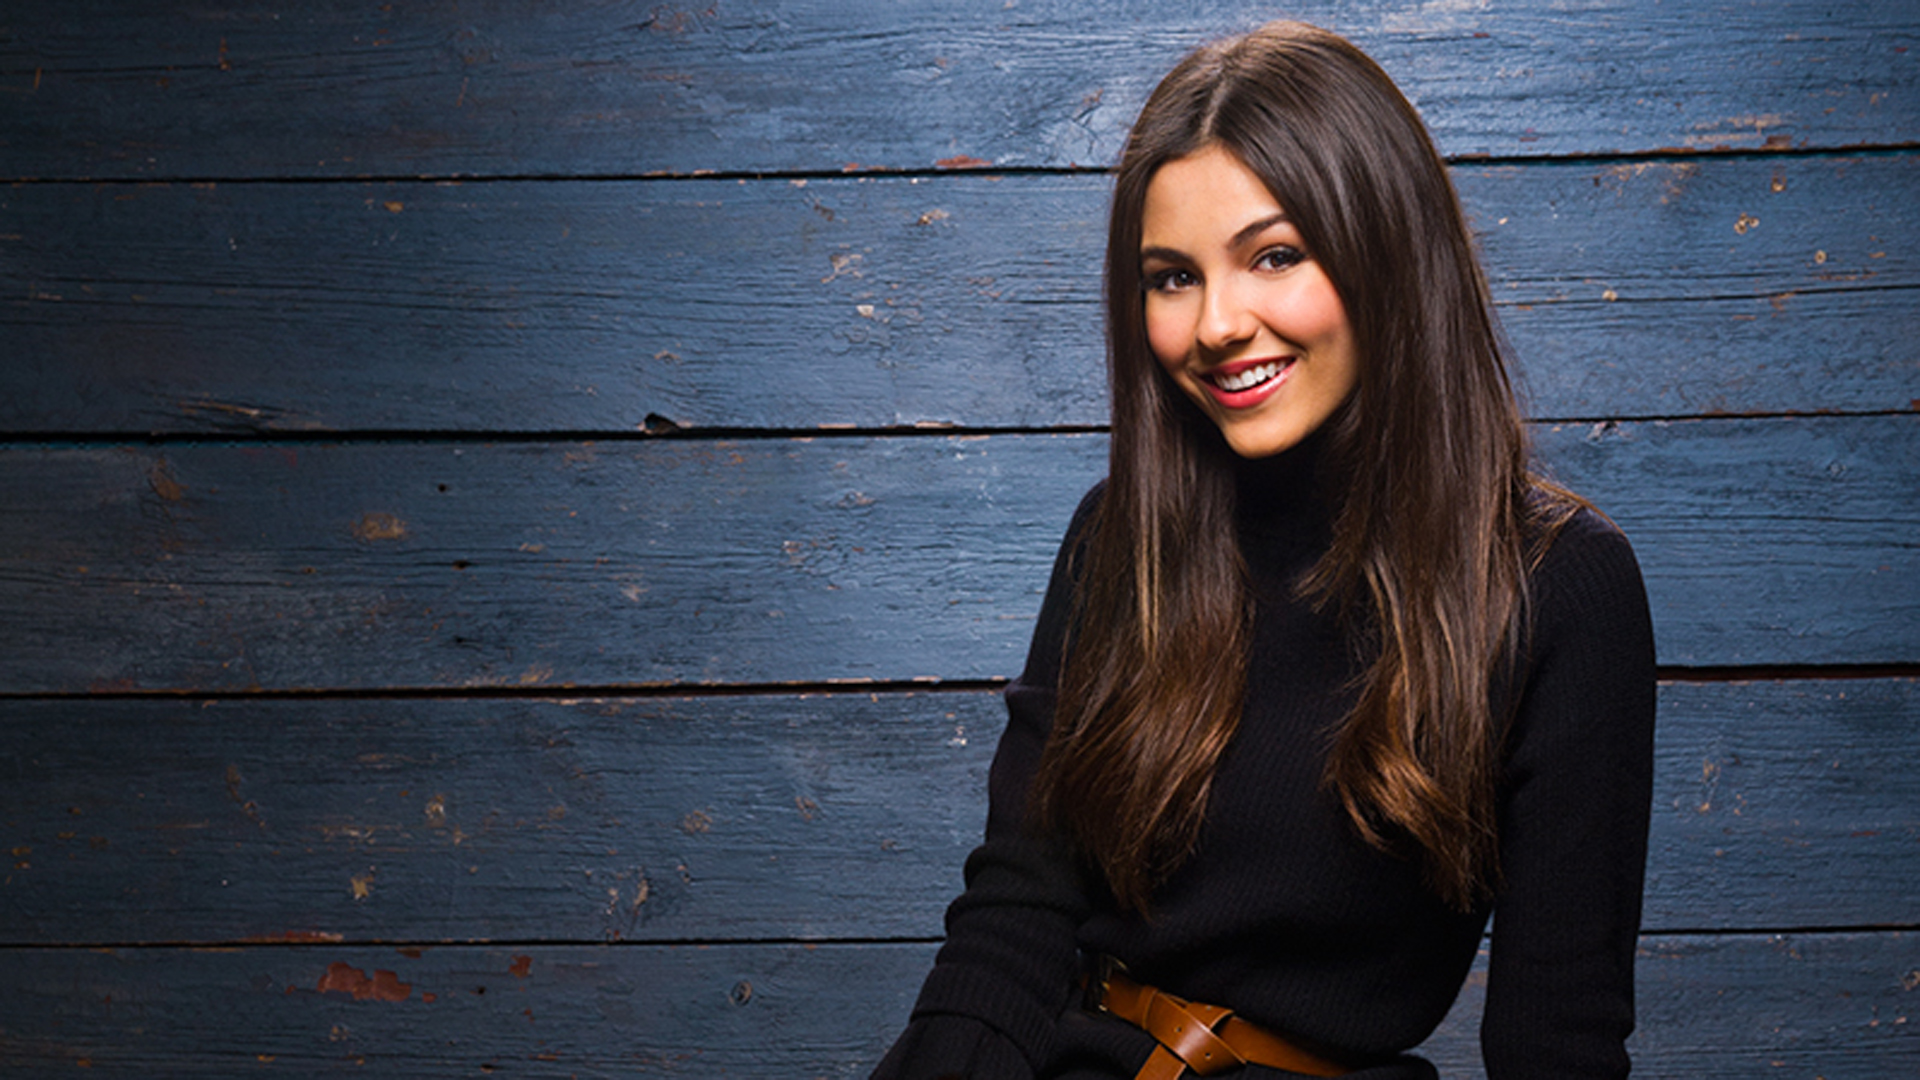 Top Victoria Justice Wallpaper Download HD Wallpapers BackgroundsTumblr Backgrounds Images Pictures